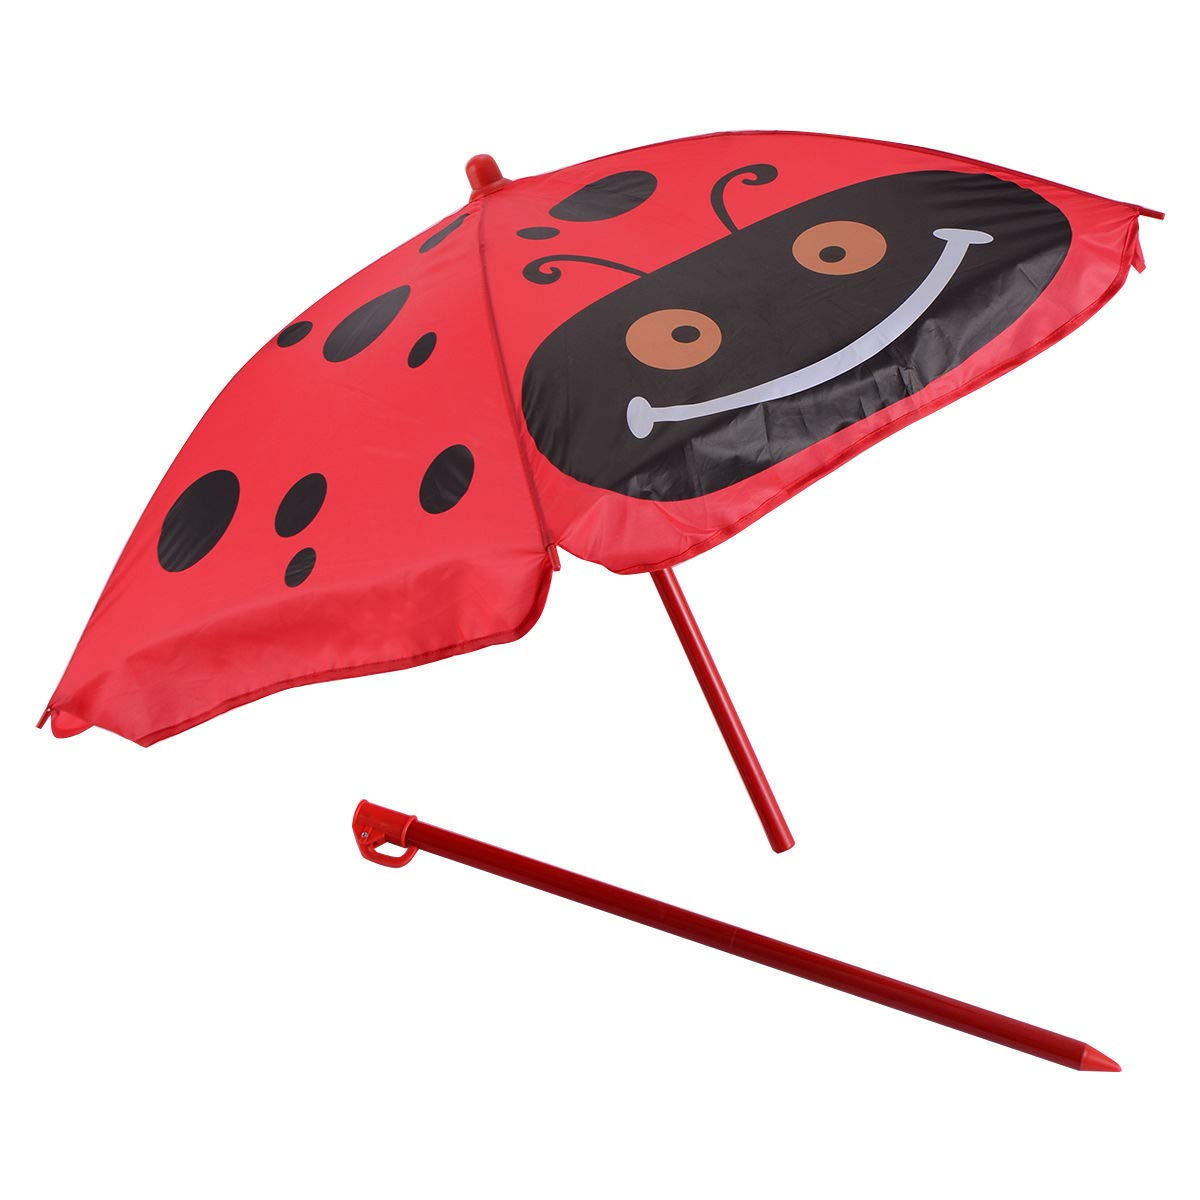 Set of 3 Red Beetle Ladybugs Pattern Kid Chair+Table+Umbrella Patio Garden Backyard Front yard Children Furniture Utility Kid room Foldable Easy Storage Light Weight Trip Party Event Picnic Home by Prettyshop4246 (Image #6)